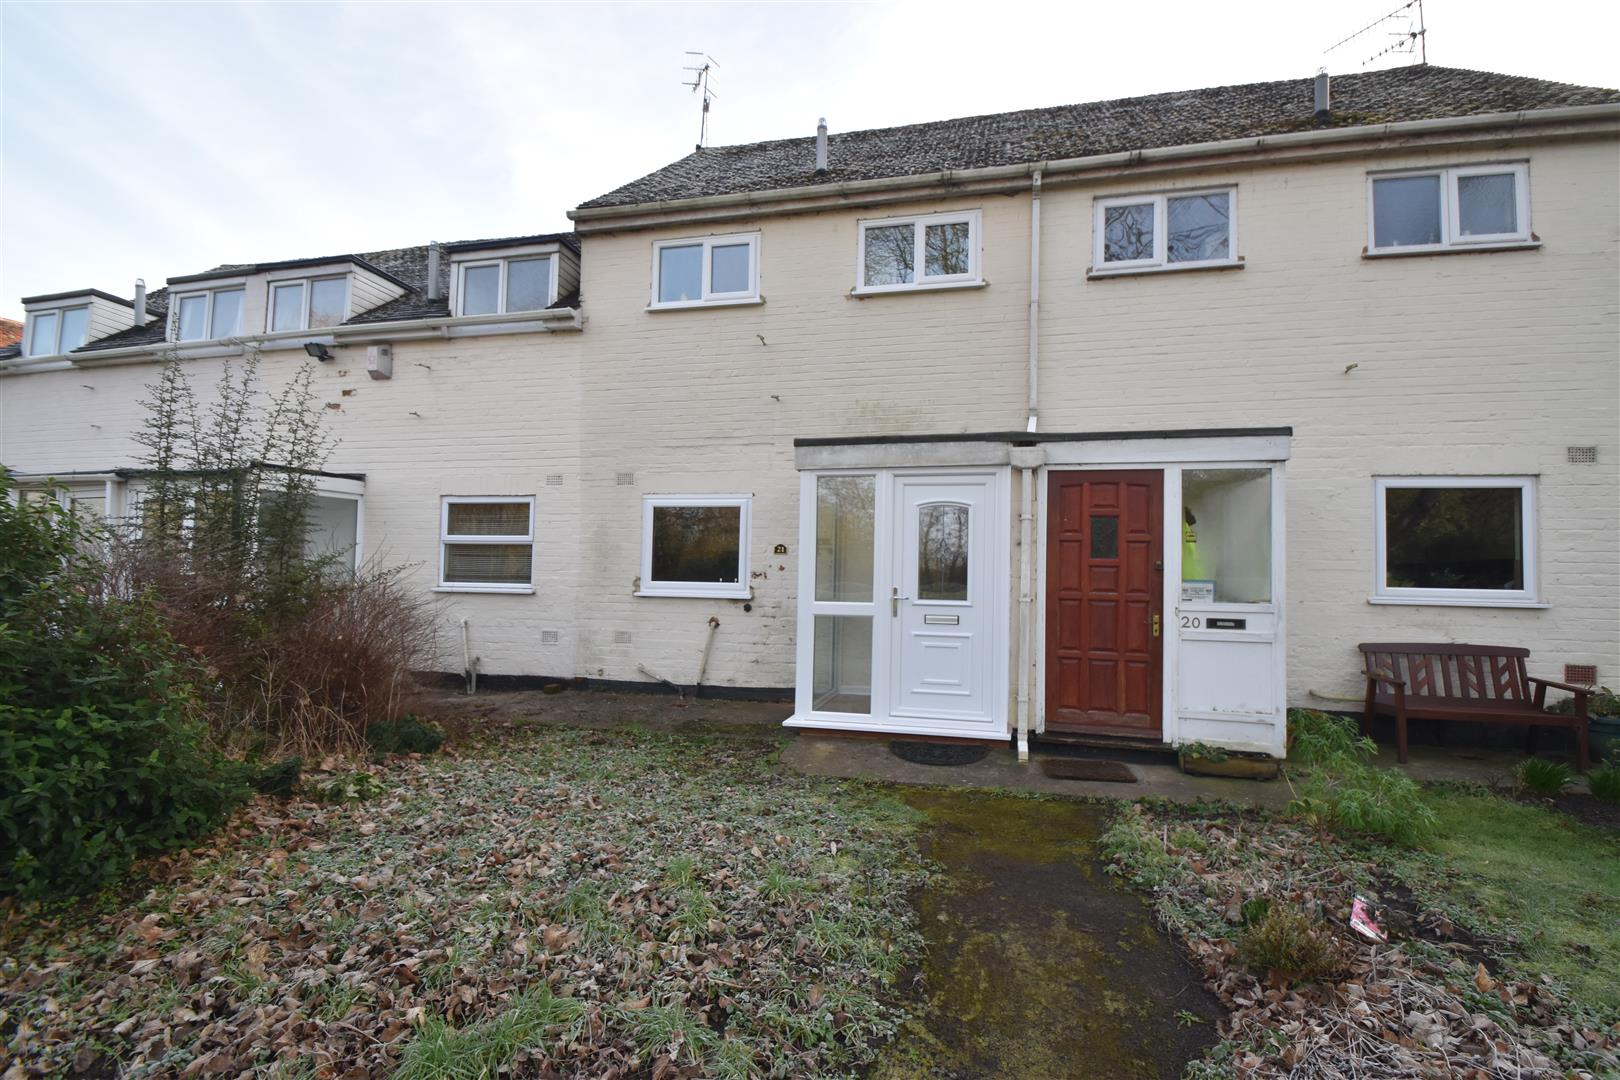 2 Bedrooms House for sale in Willow Court, Droitwich